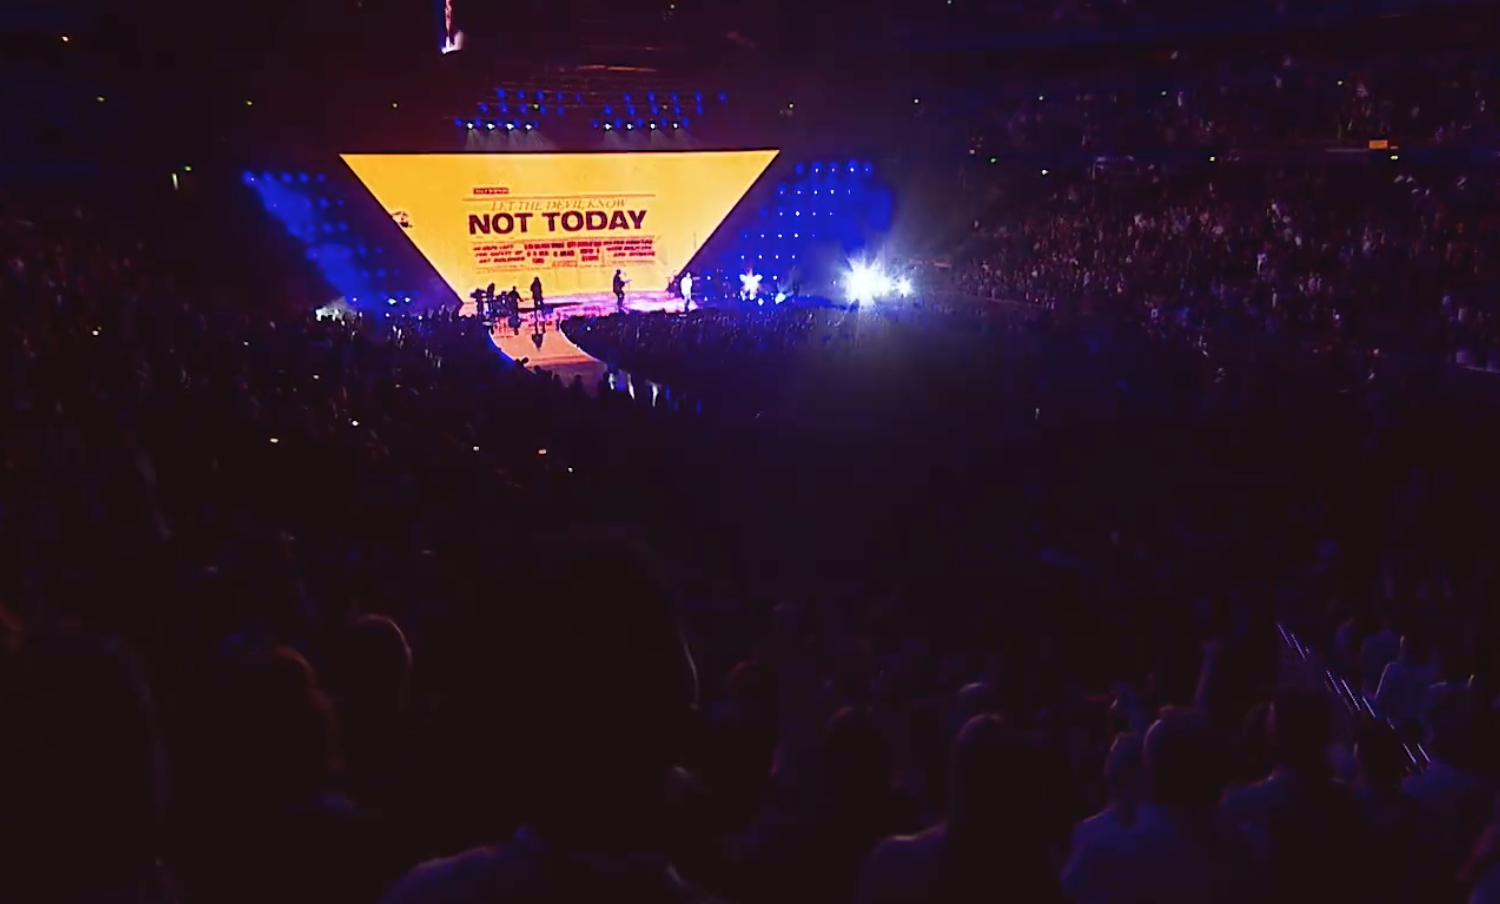 Not Today (Live)